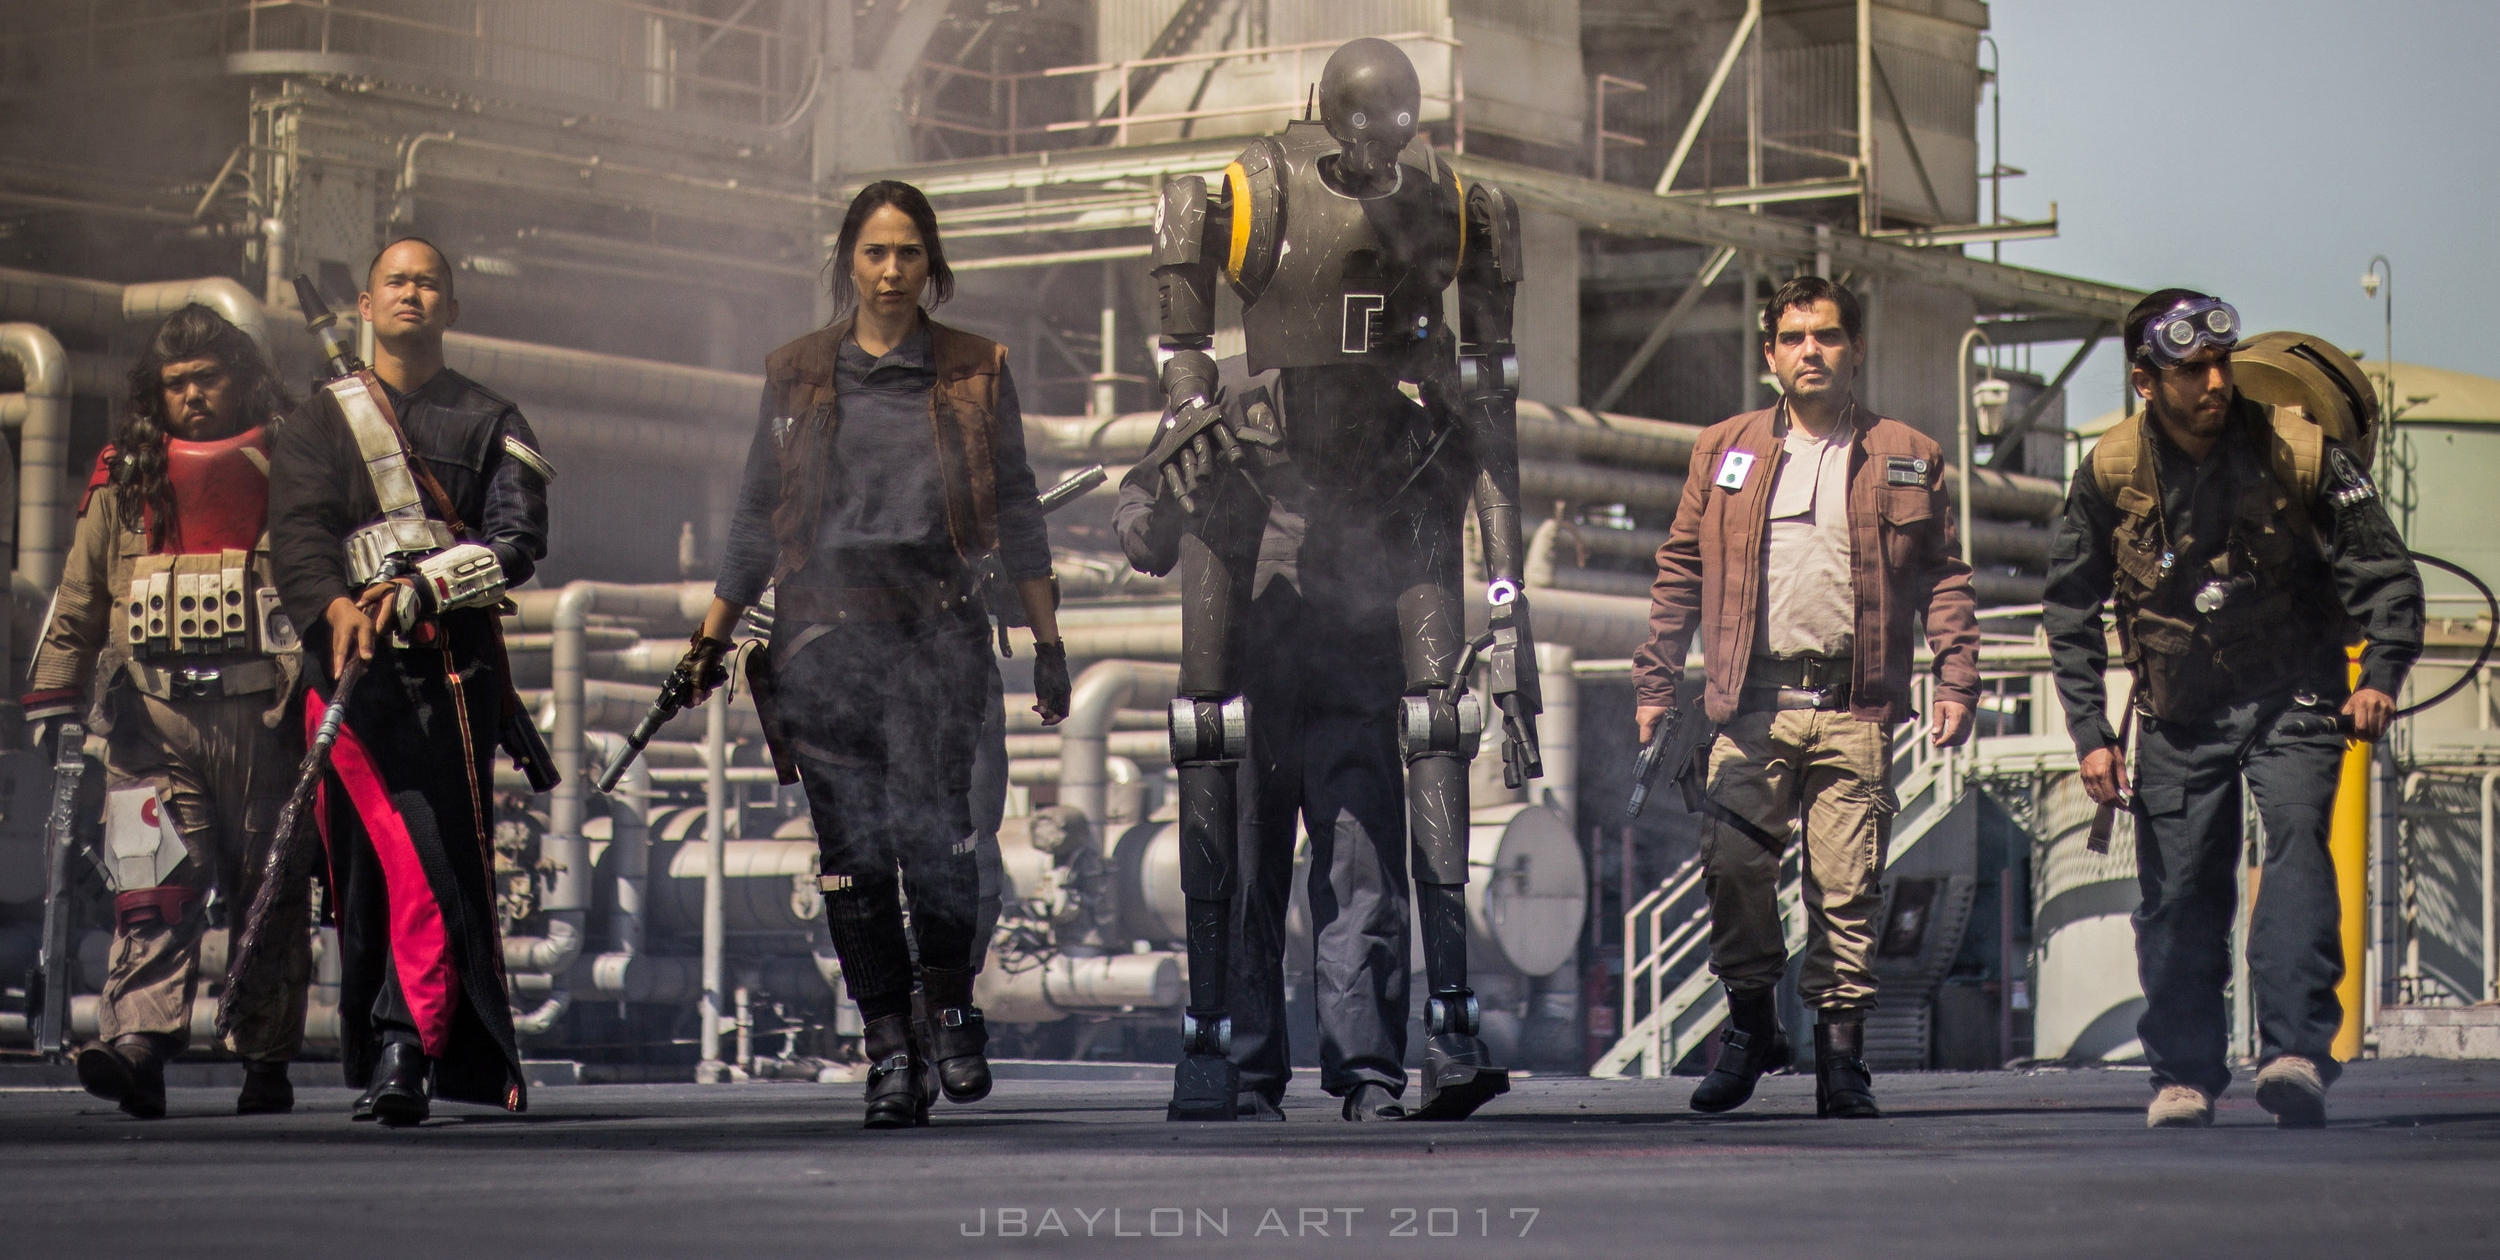 Click to see more Rogue One photos - Jordan Baylon - Art & Photography